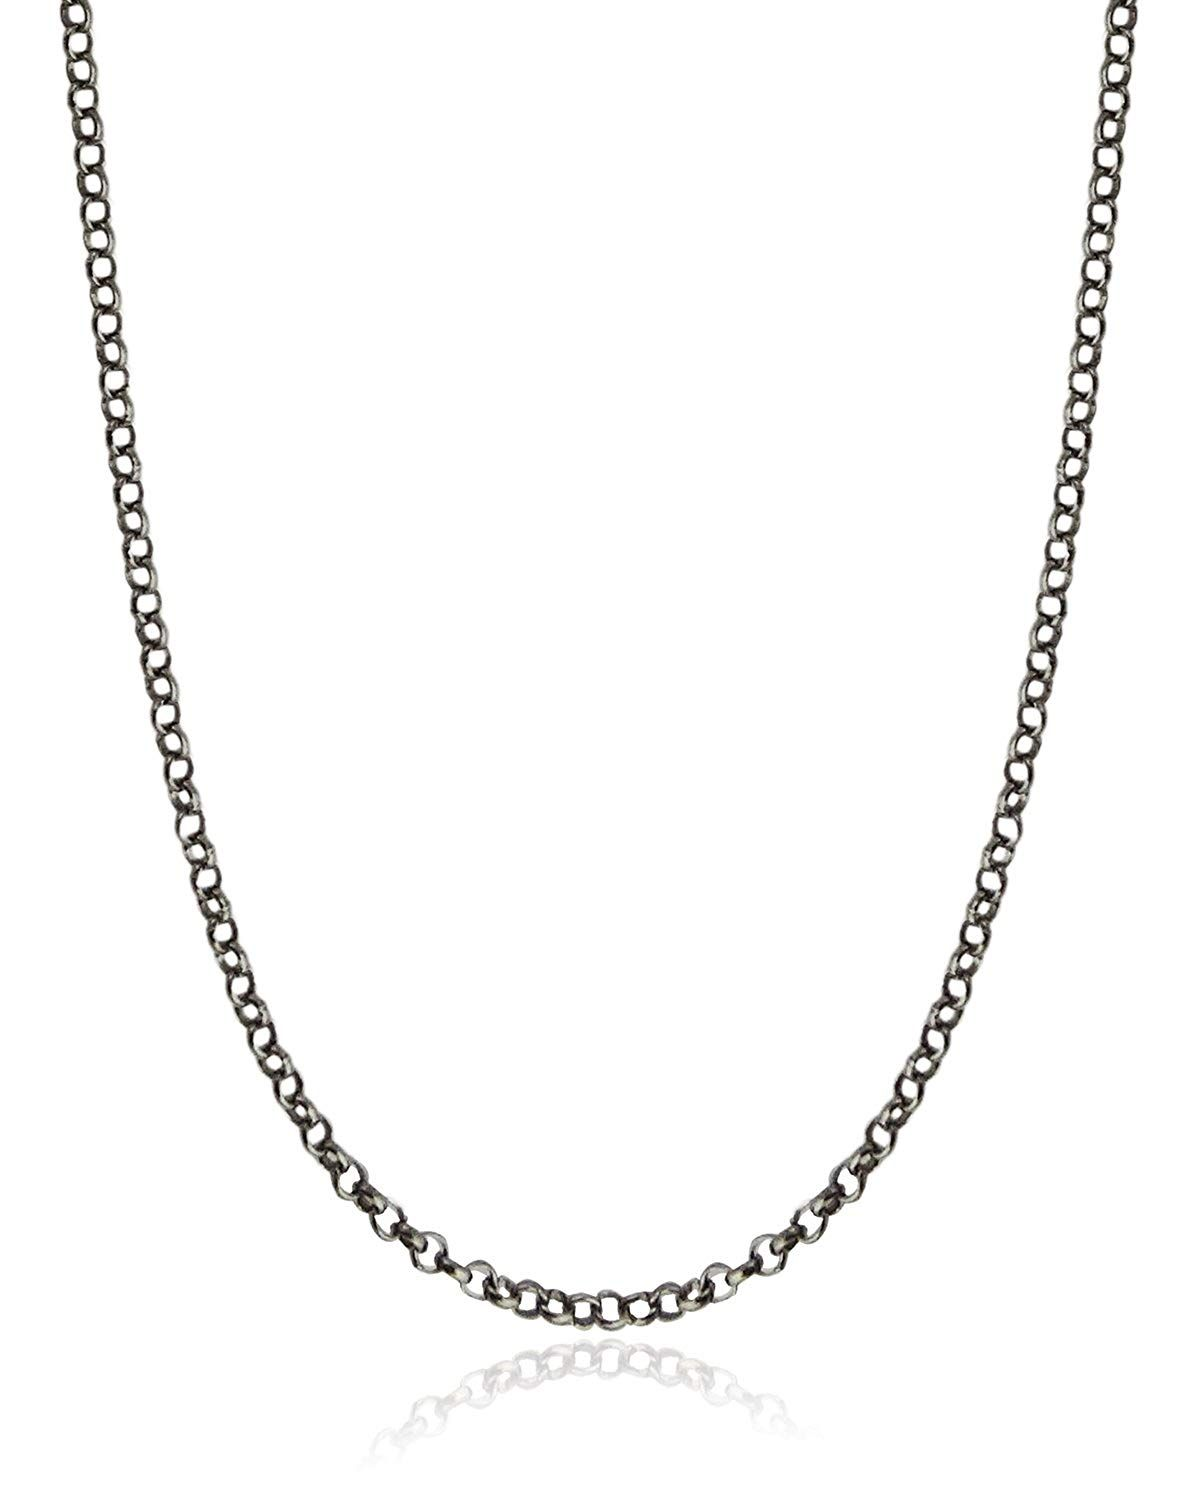 Rollo 24 Oxidized Black Sterling Silver 1 2mm Rolo Or Rollo Chain Necklace